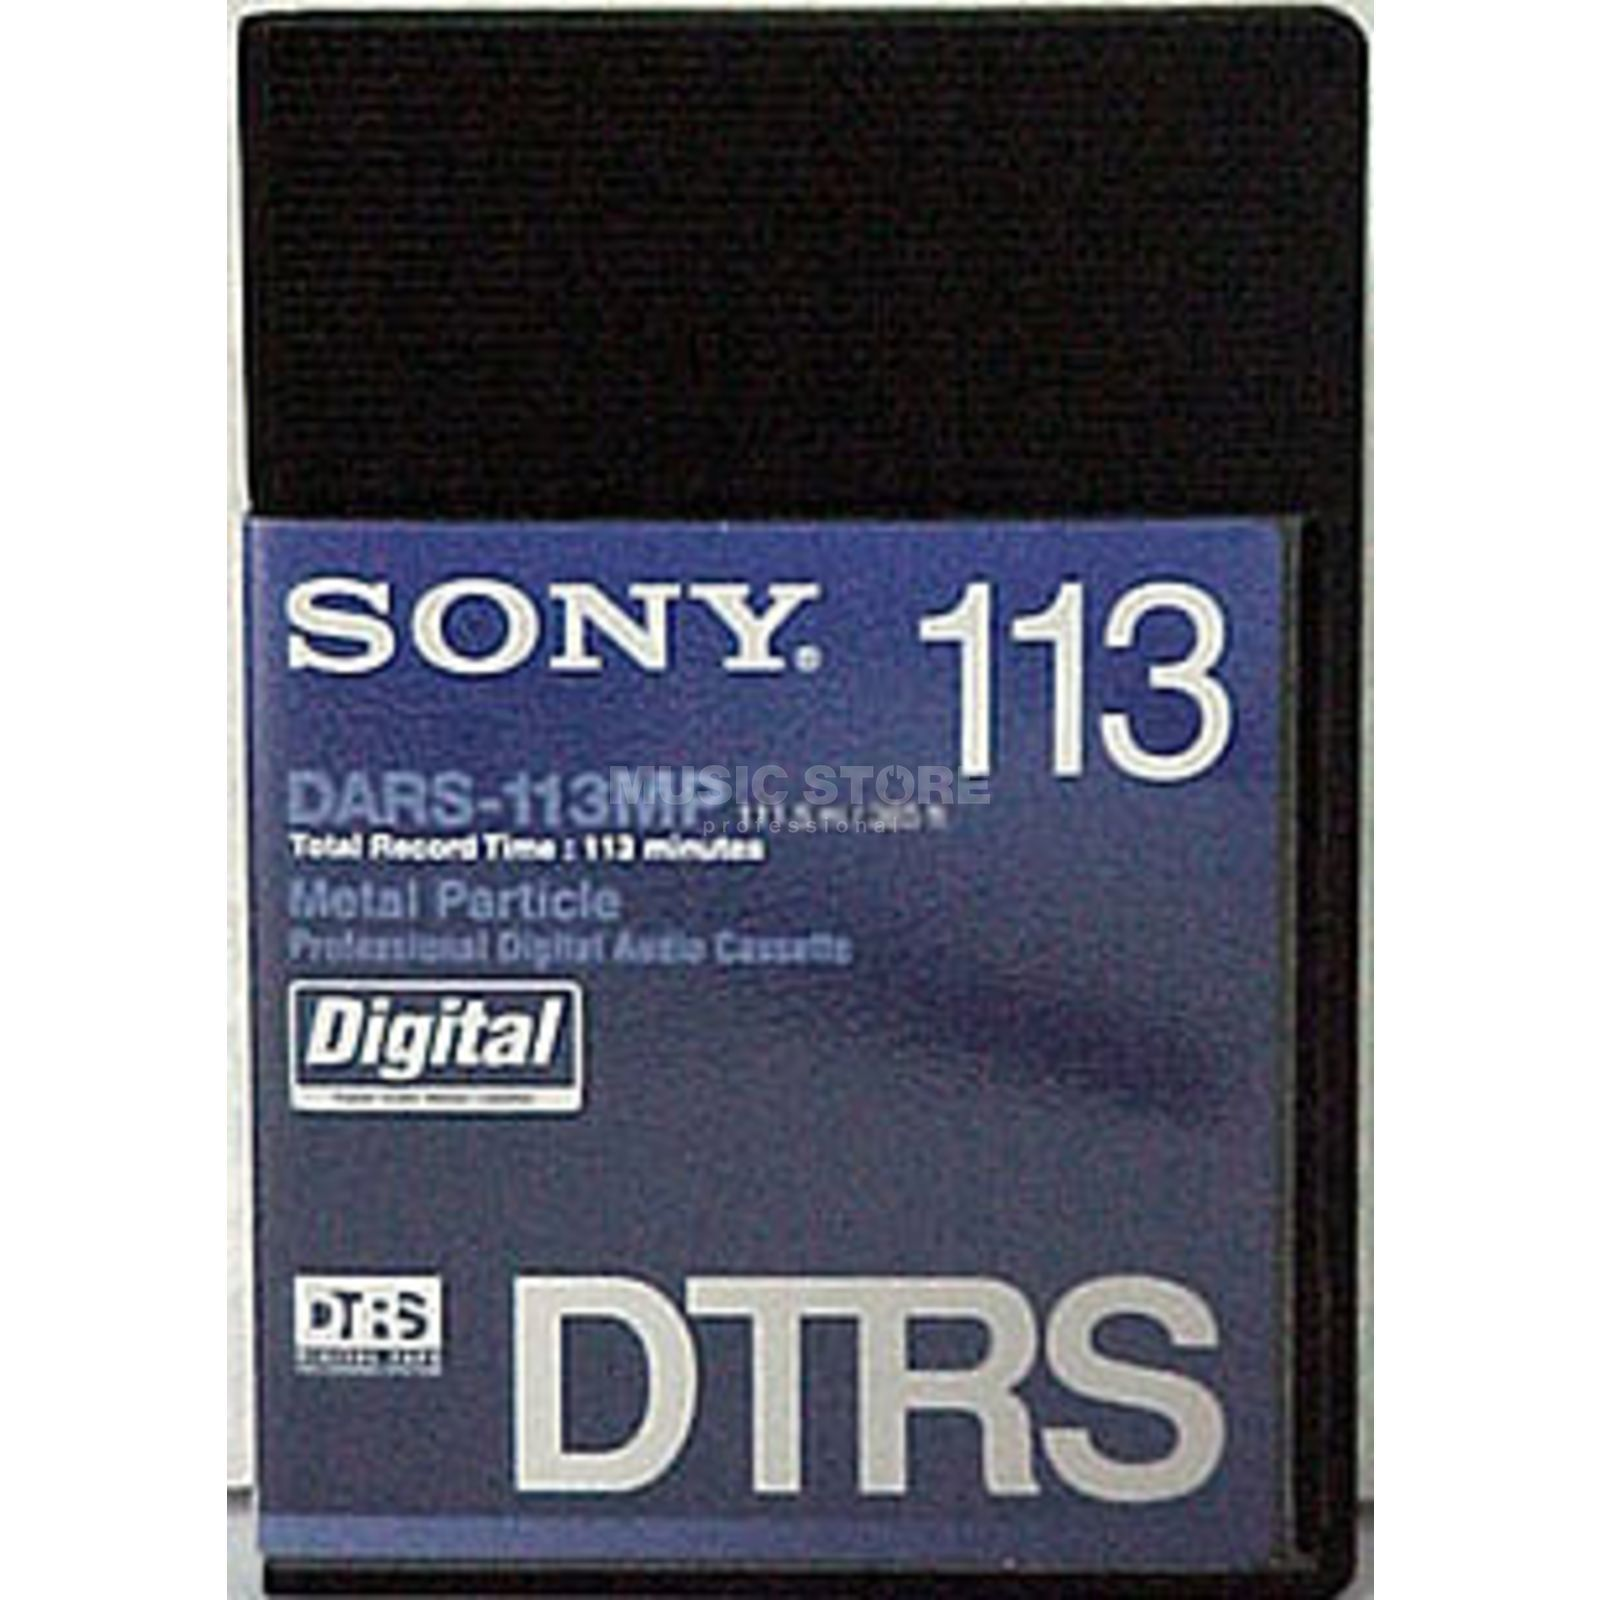 Sony DARS-113MP Digital Audio Tape 113 Min. Digitalband-Cassette Produktbild